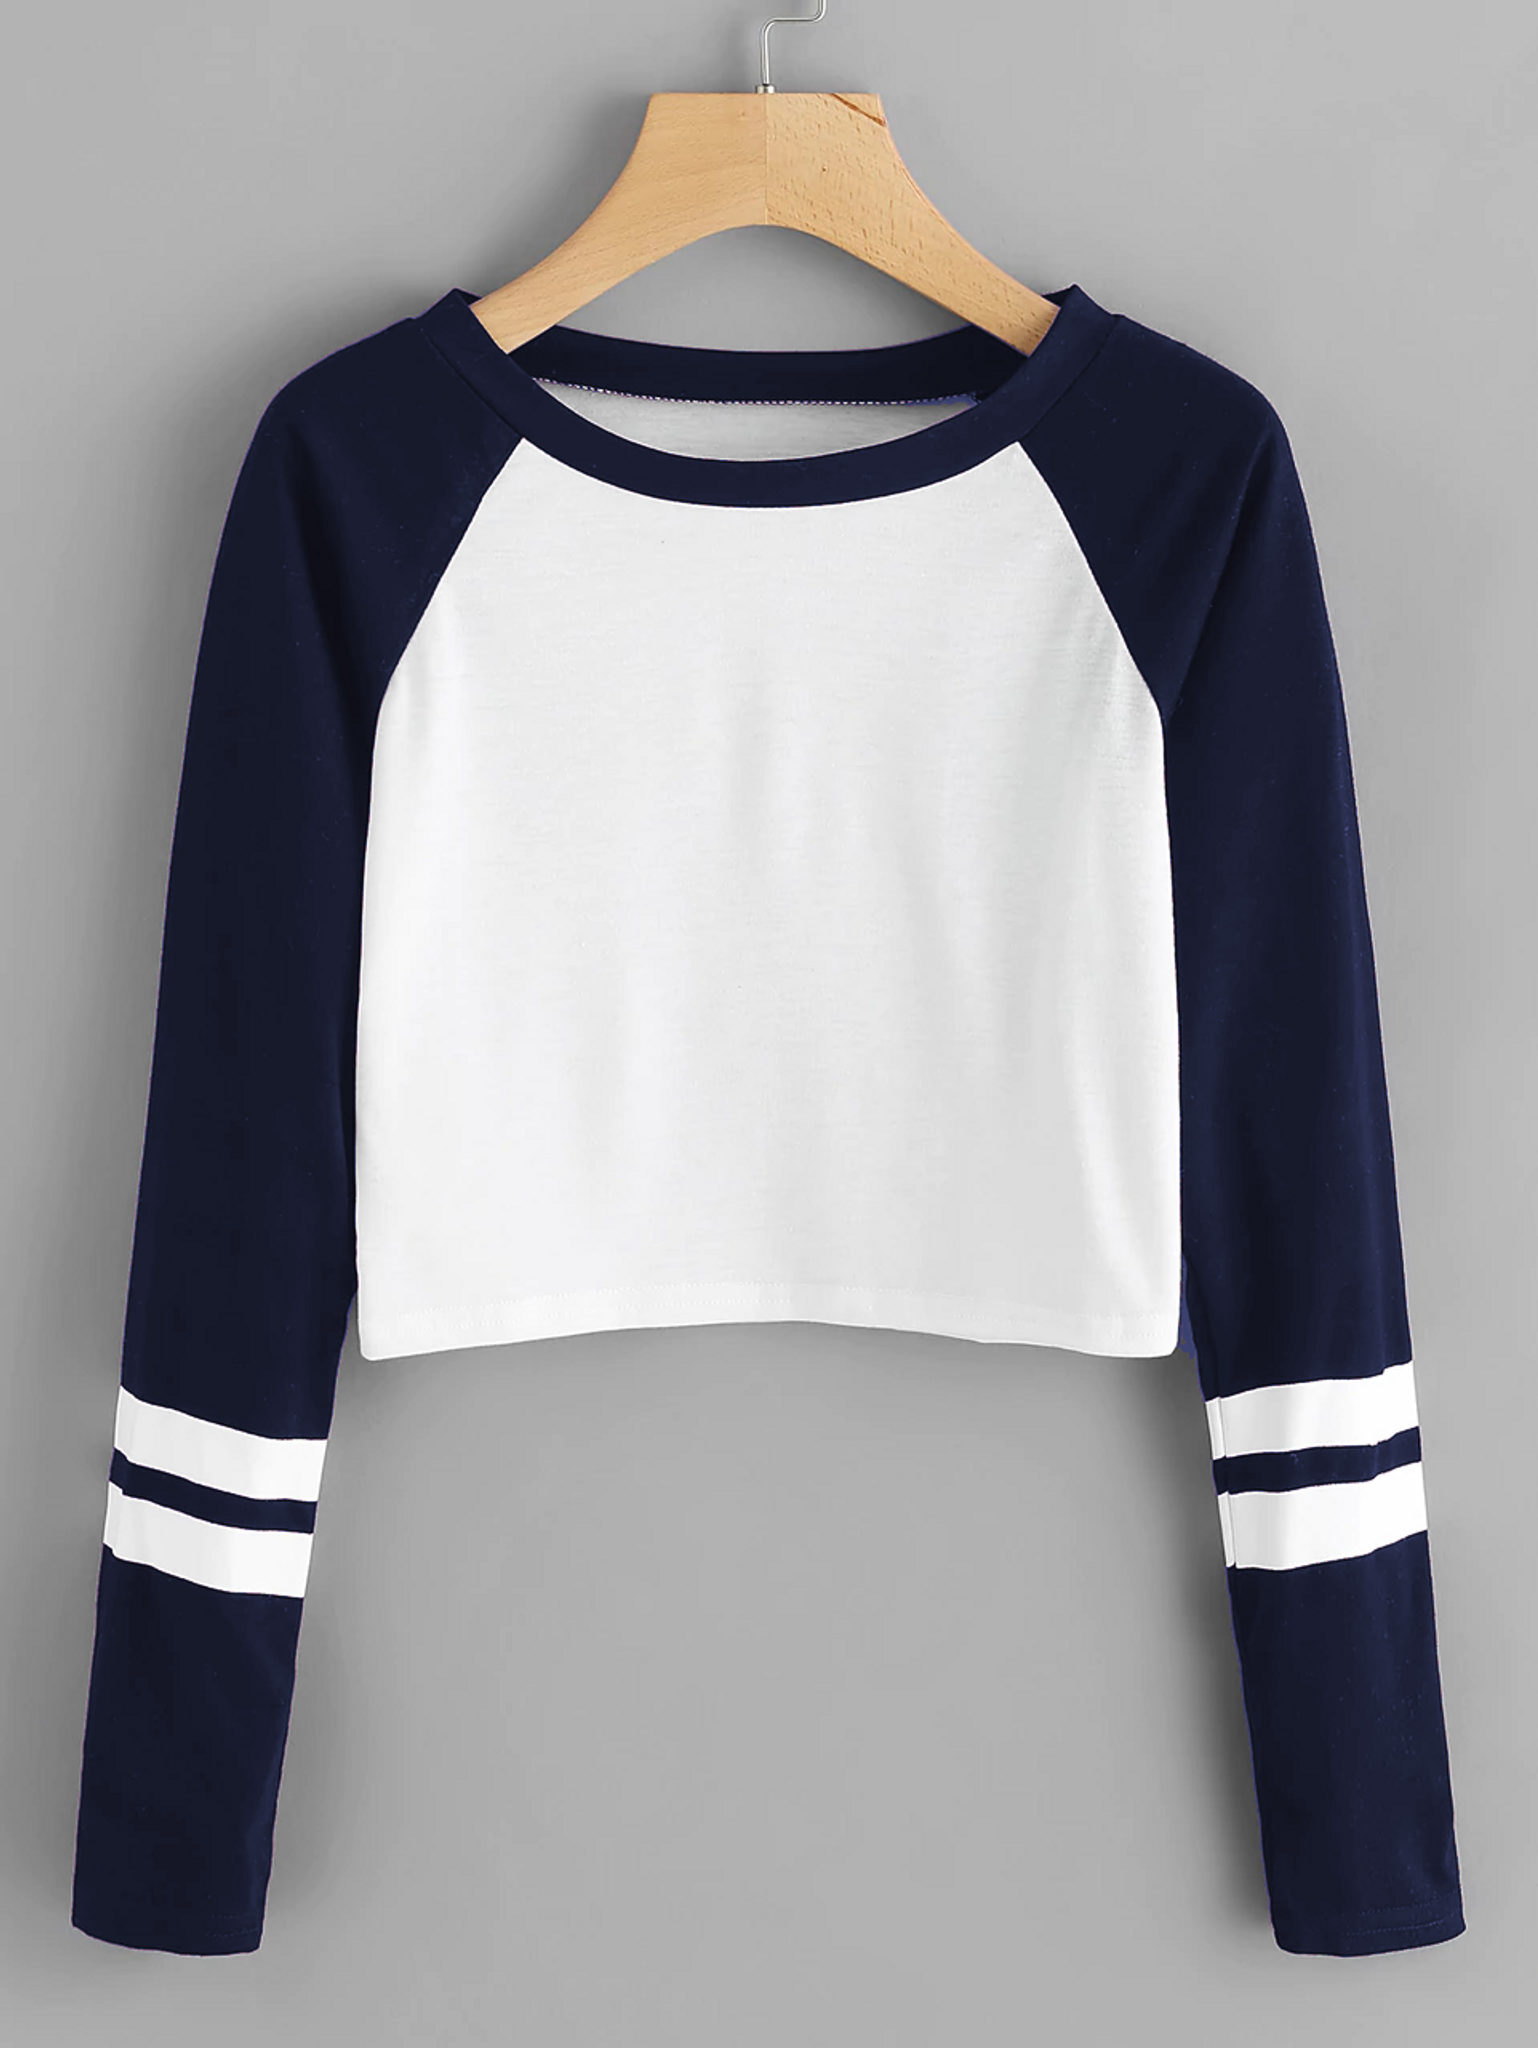 706fe073a Fifth Avenue Women s Raglan Full Sleeve Sleeve Striped Crop T-Shirt - Navy  Blue and White